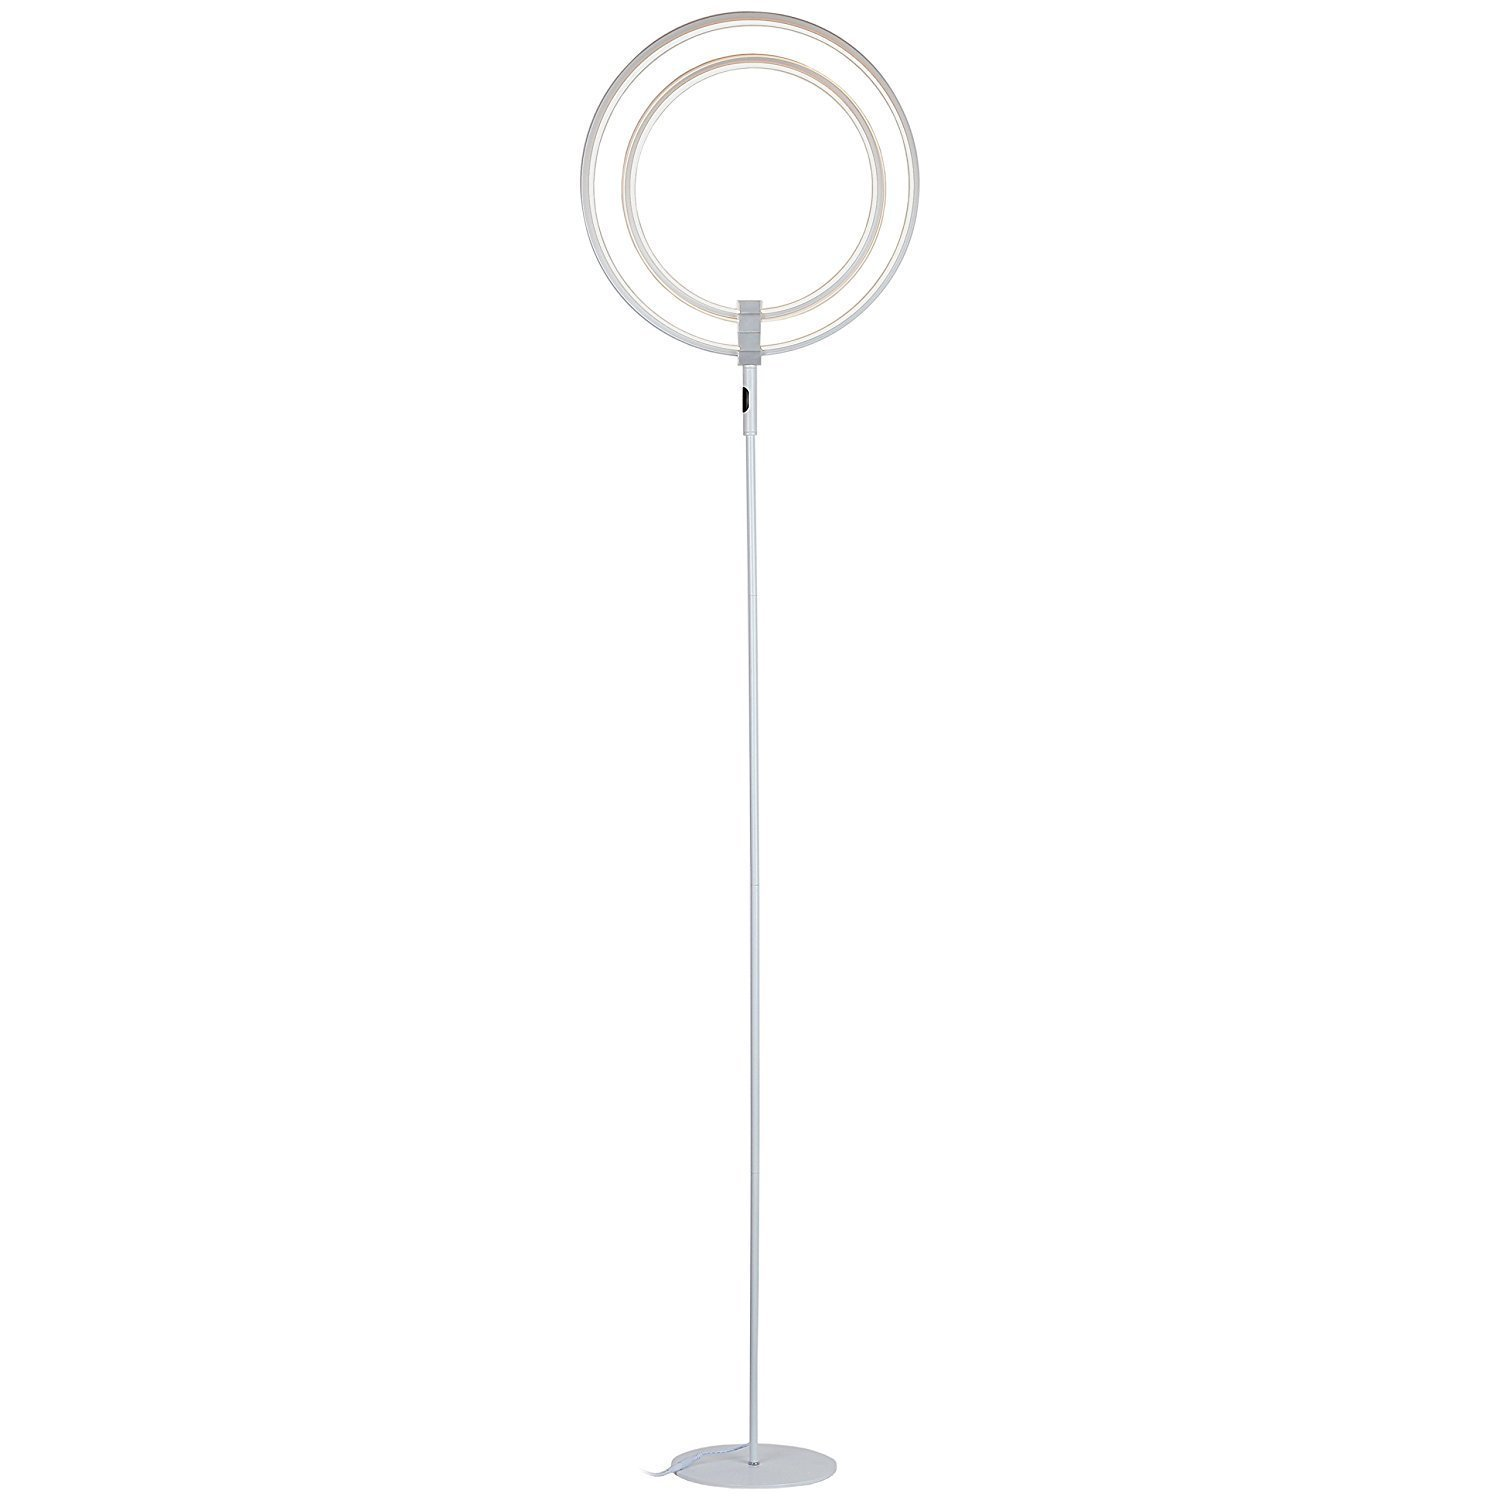 Brightech Eclipse LED Floor Lamp - Super Bright & Dimmable Modern Light For Living Room Or Office Tasks - Contemporary, Tall Standing Pole Lamps - Cool Look, Adjustable-Position Ring Lighting - Silver